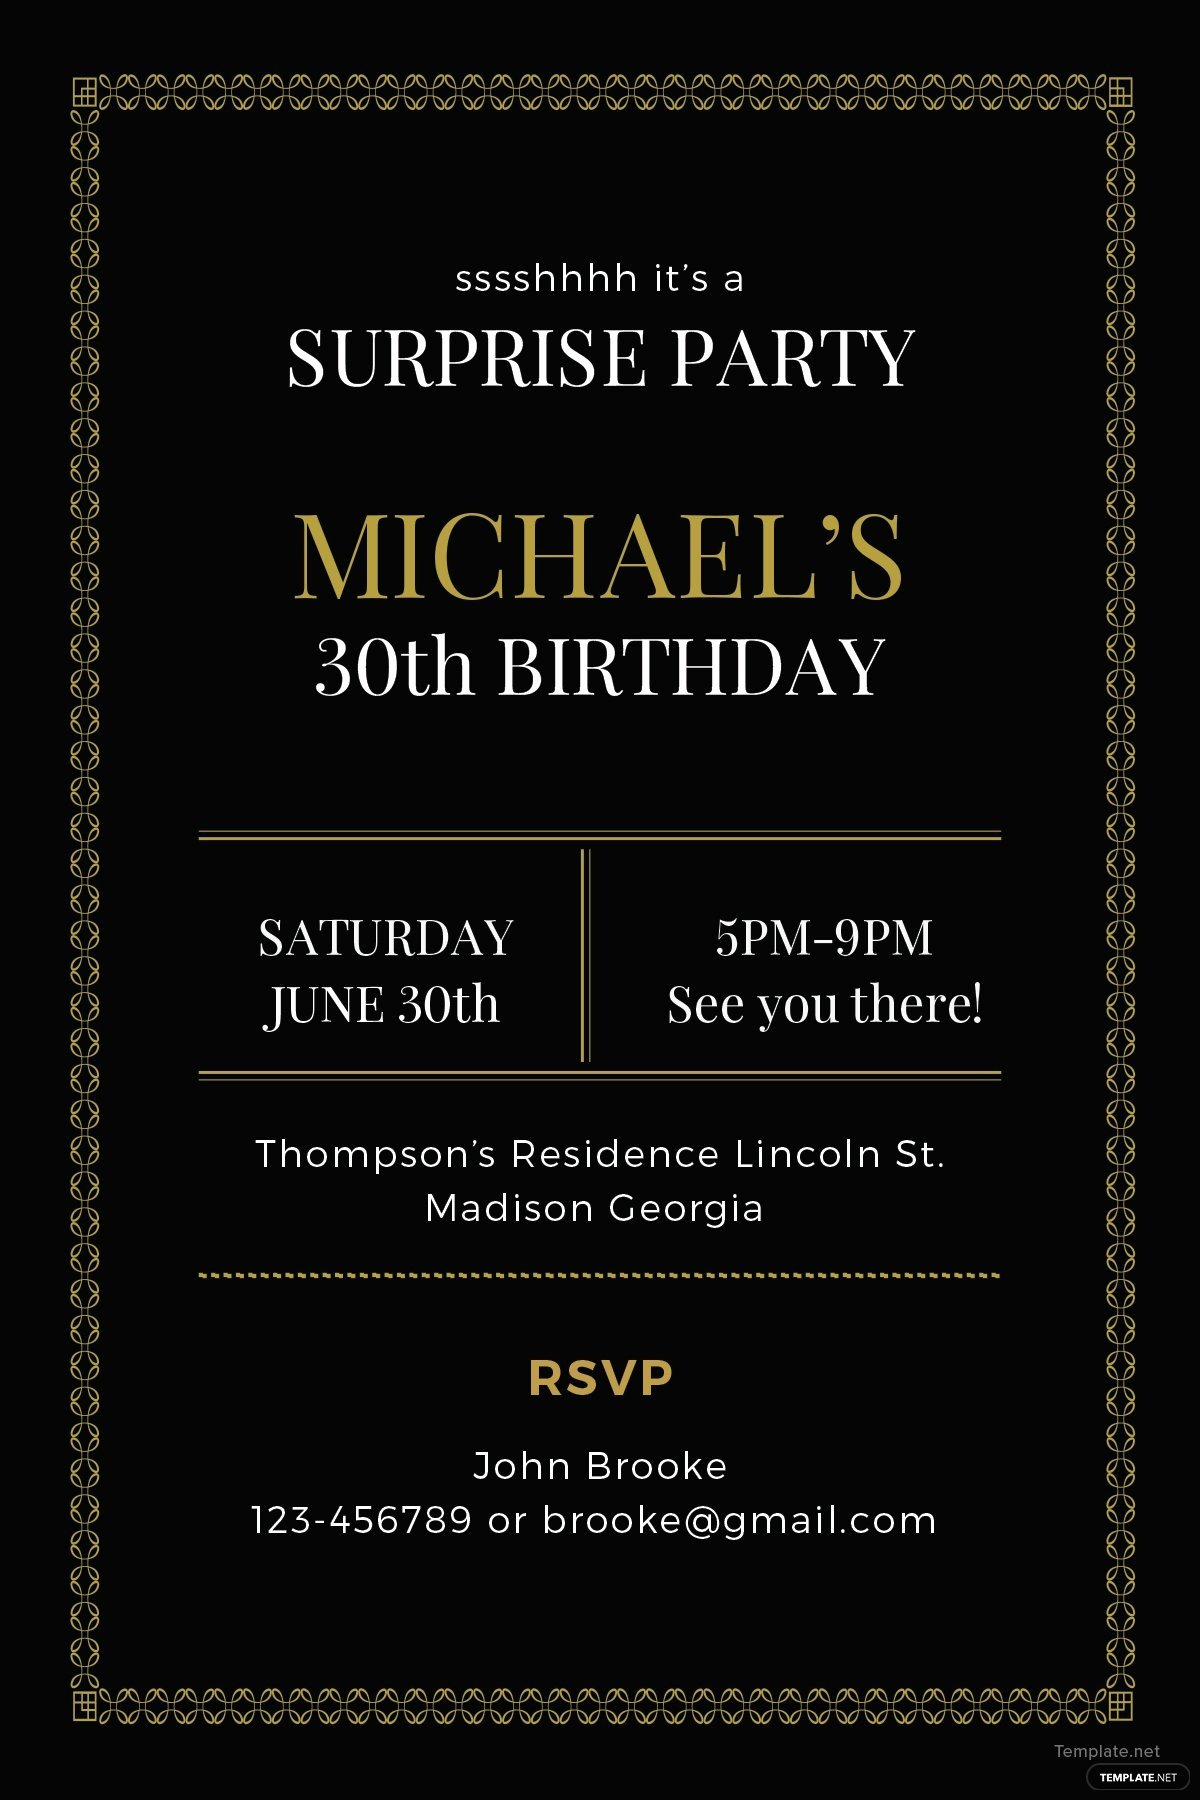 Free Surprise Party Invitation Template In Adobe